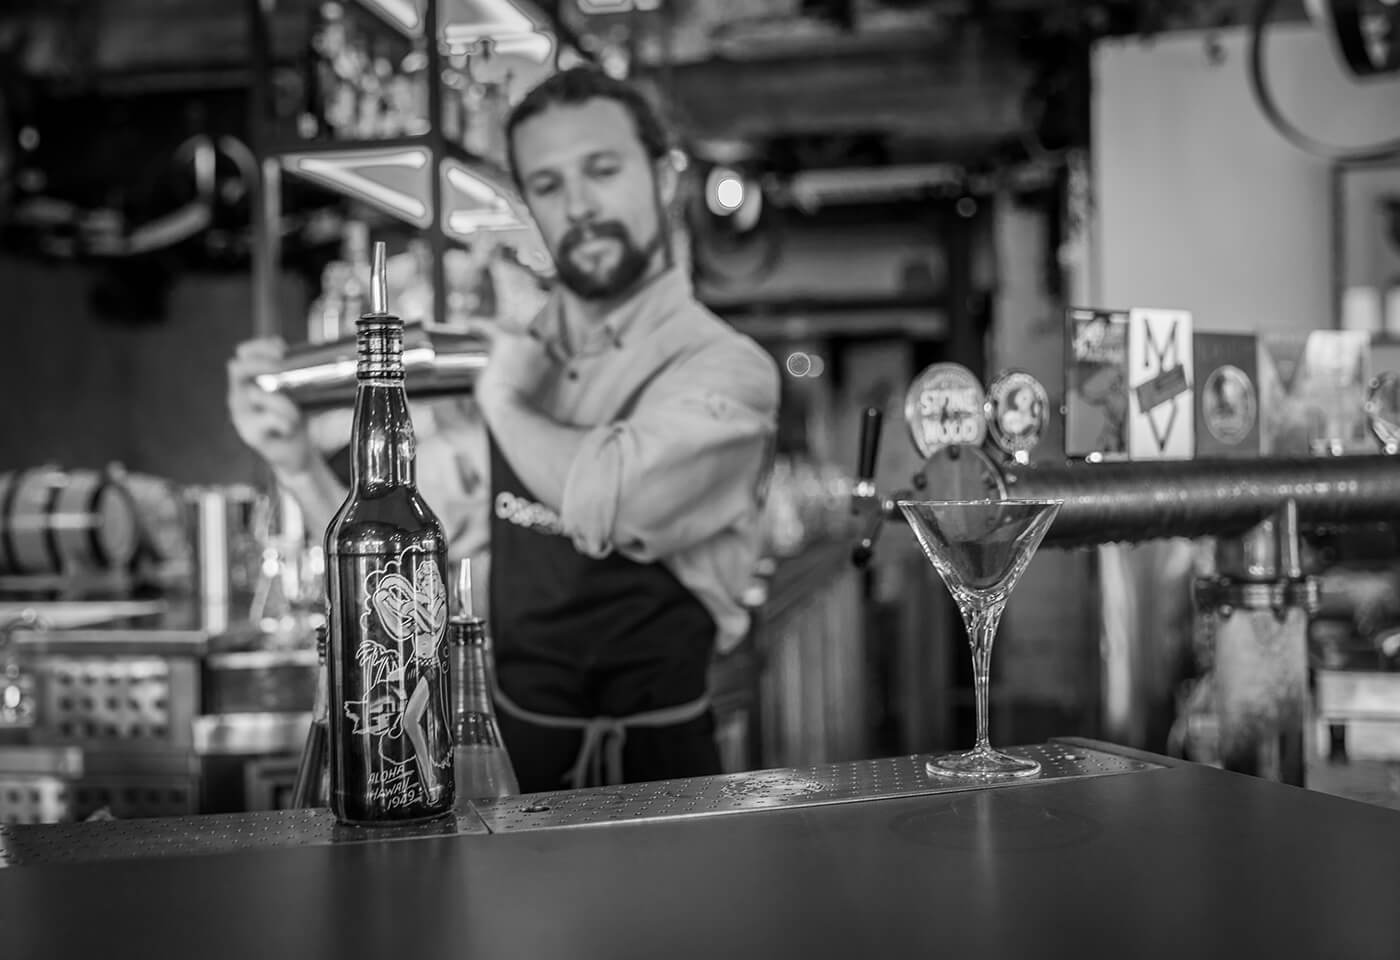 Black and white portrait image of bartender